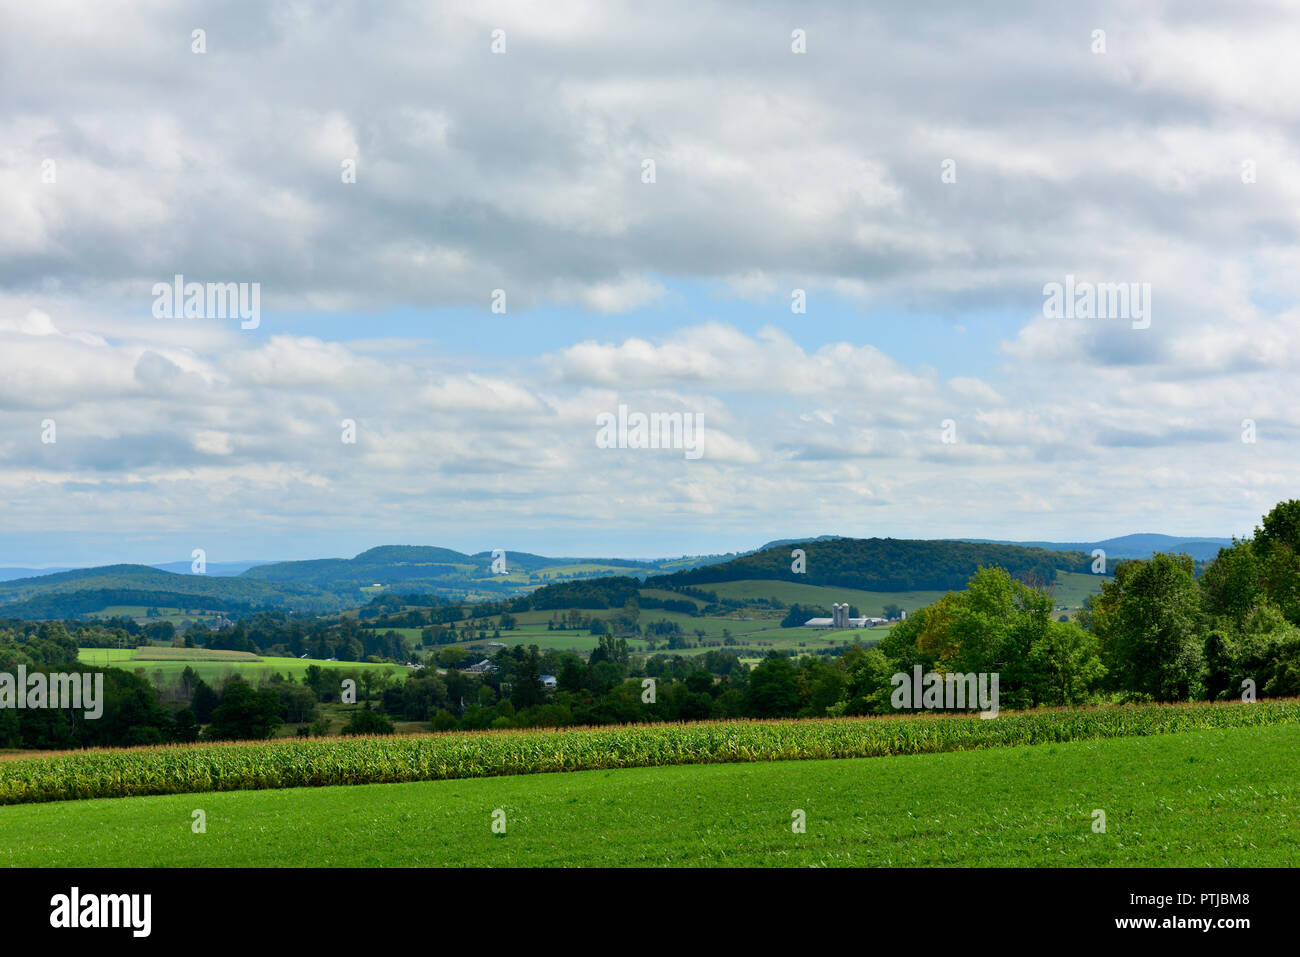 Countryside landscape near Richfield between Albany and Syracuse NY along Hwy 20, USA - Stock Image